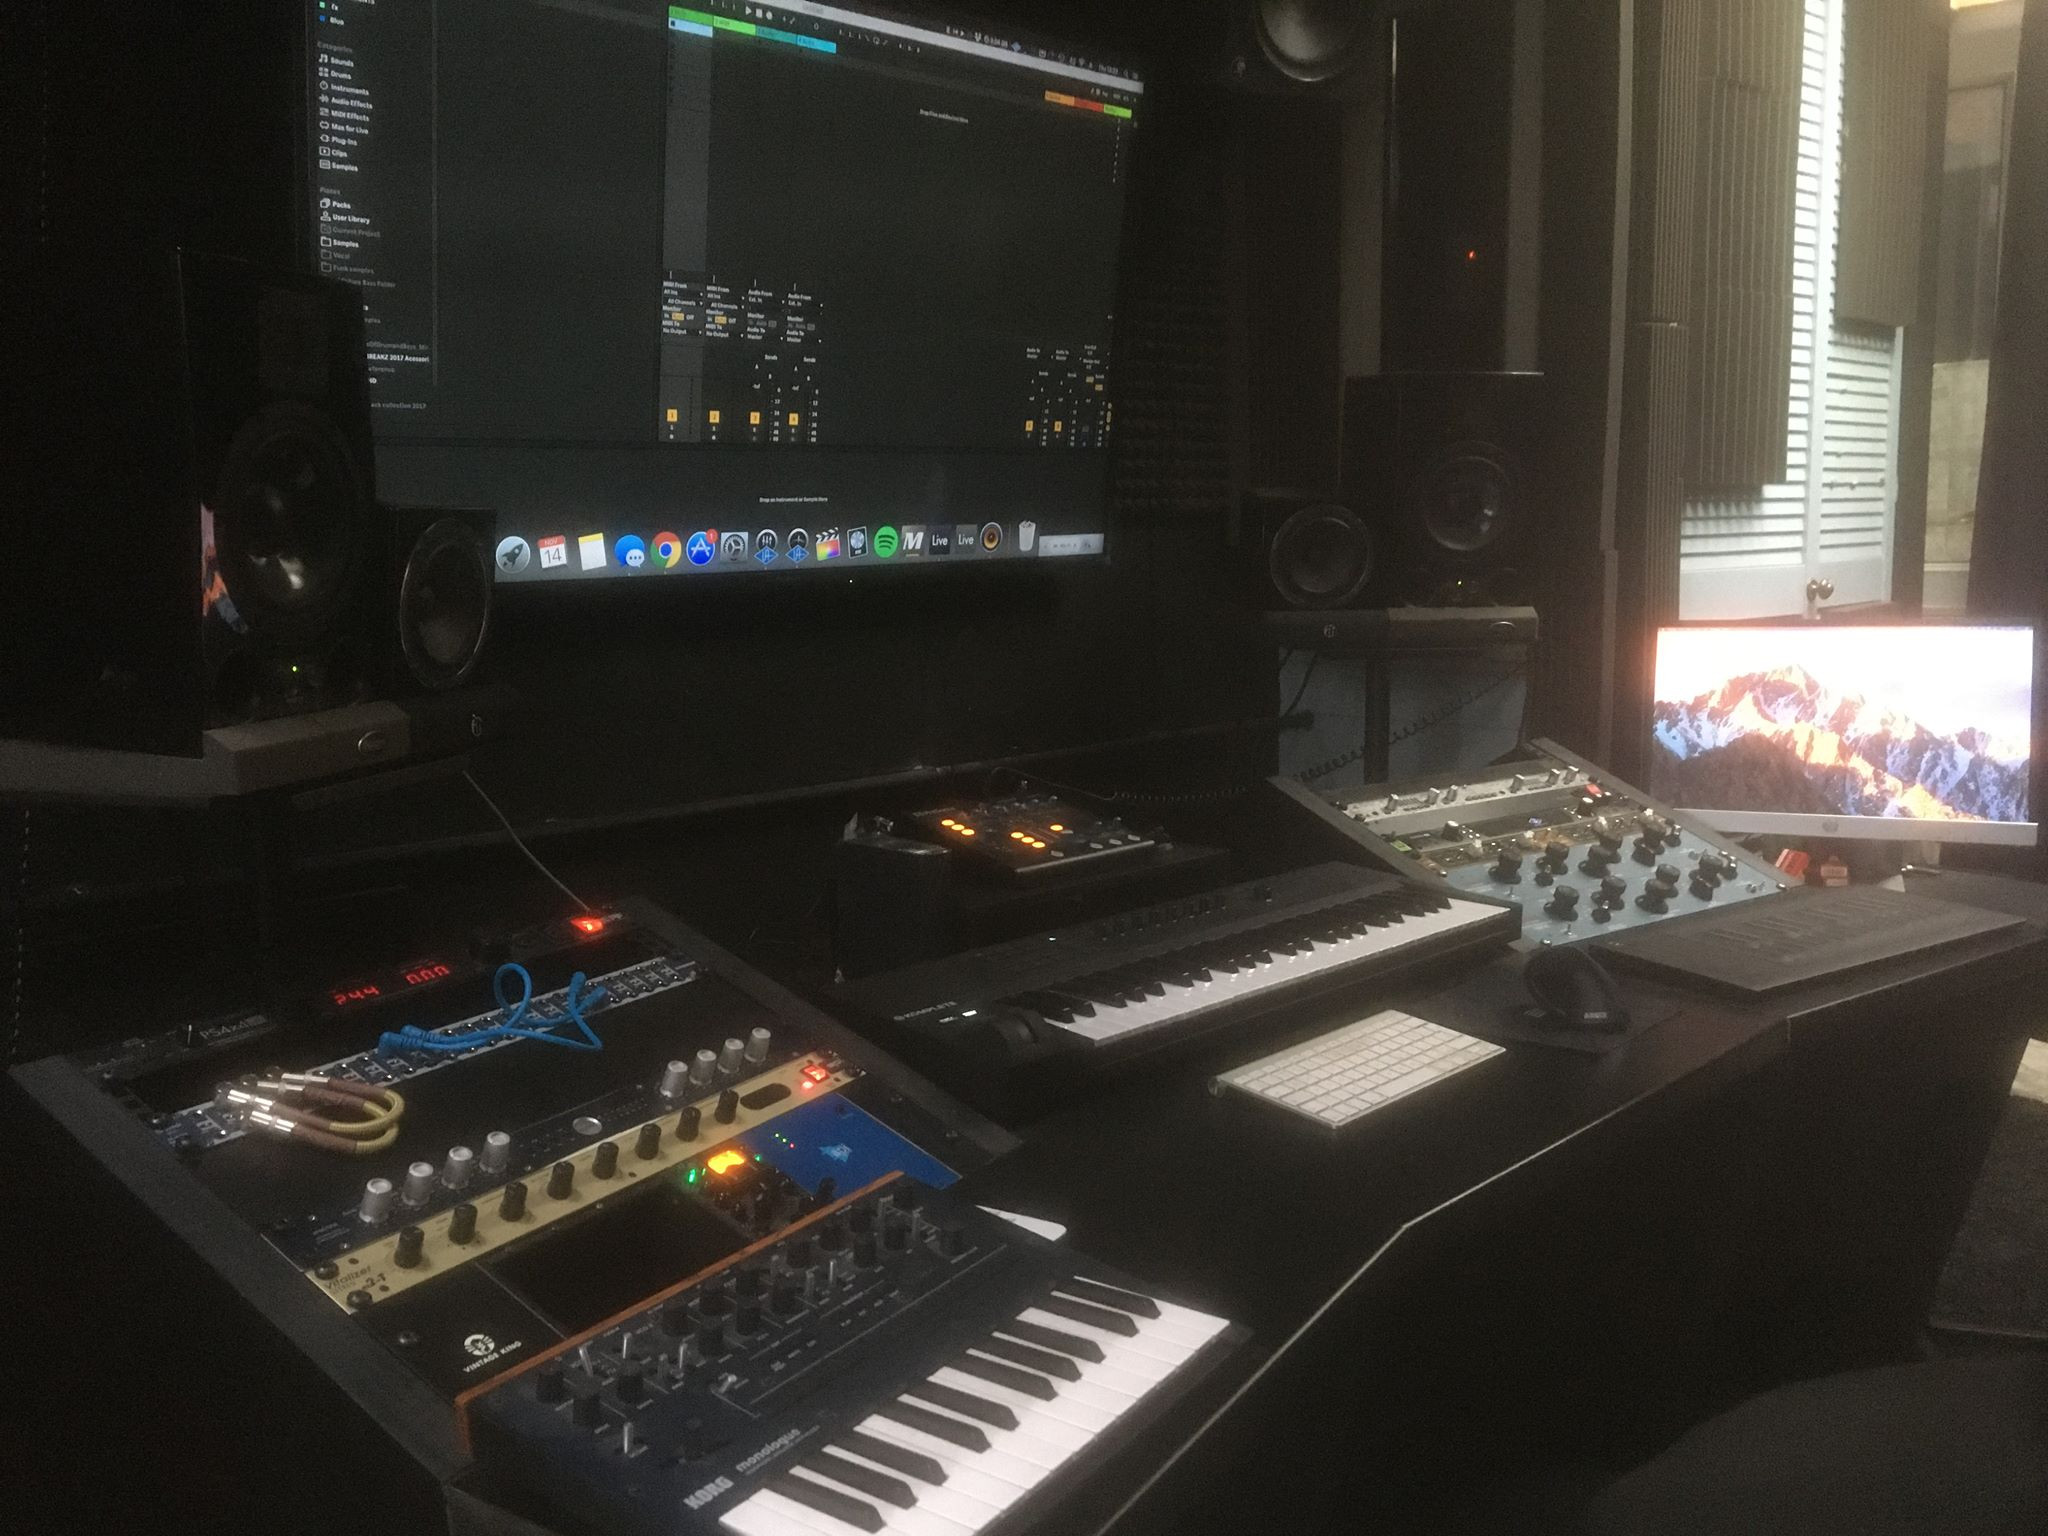 Electronic music production tuition